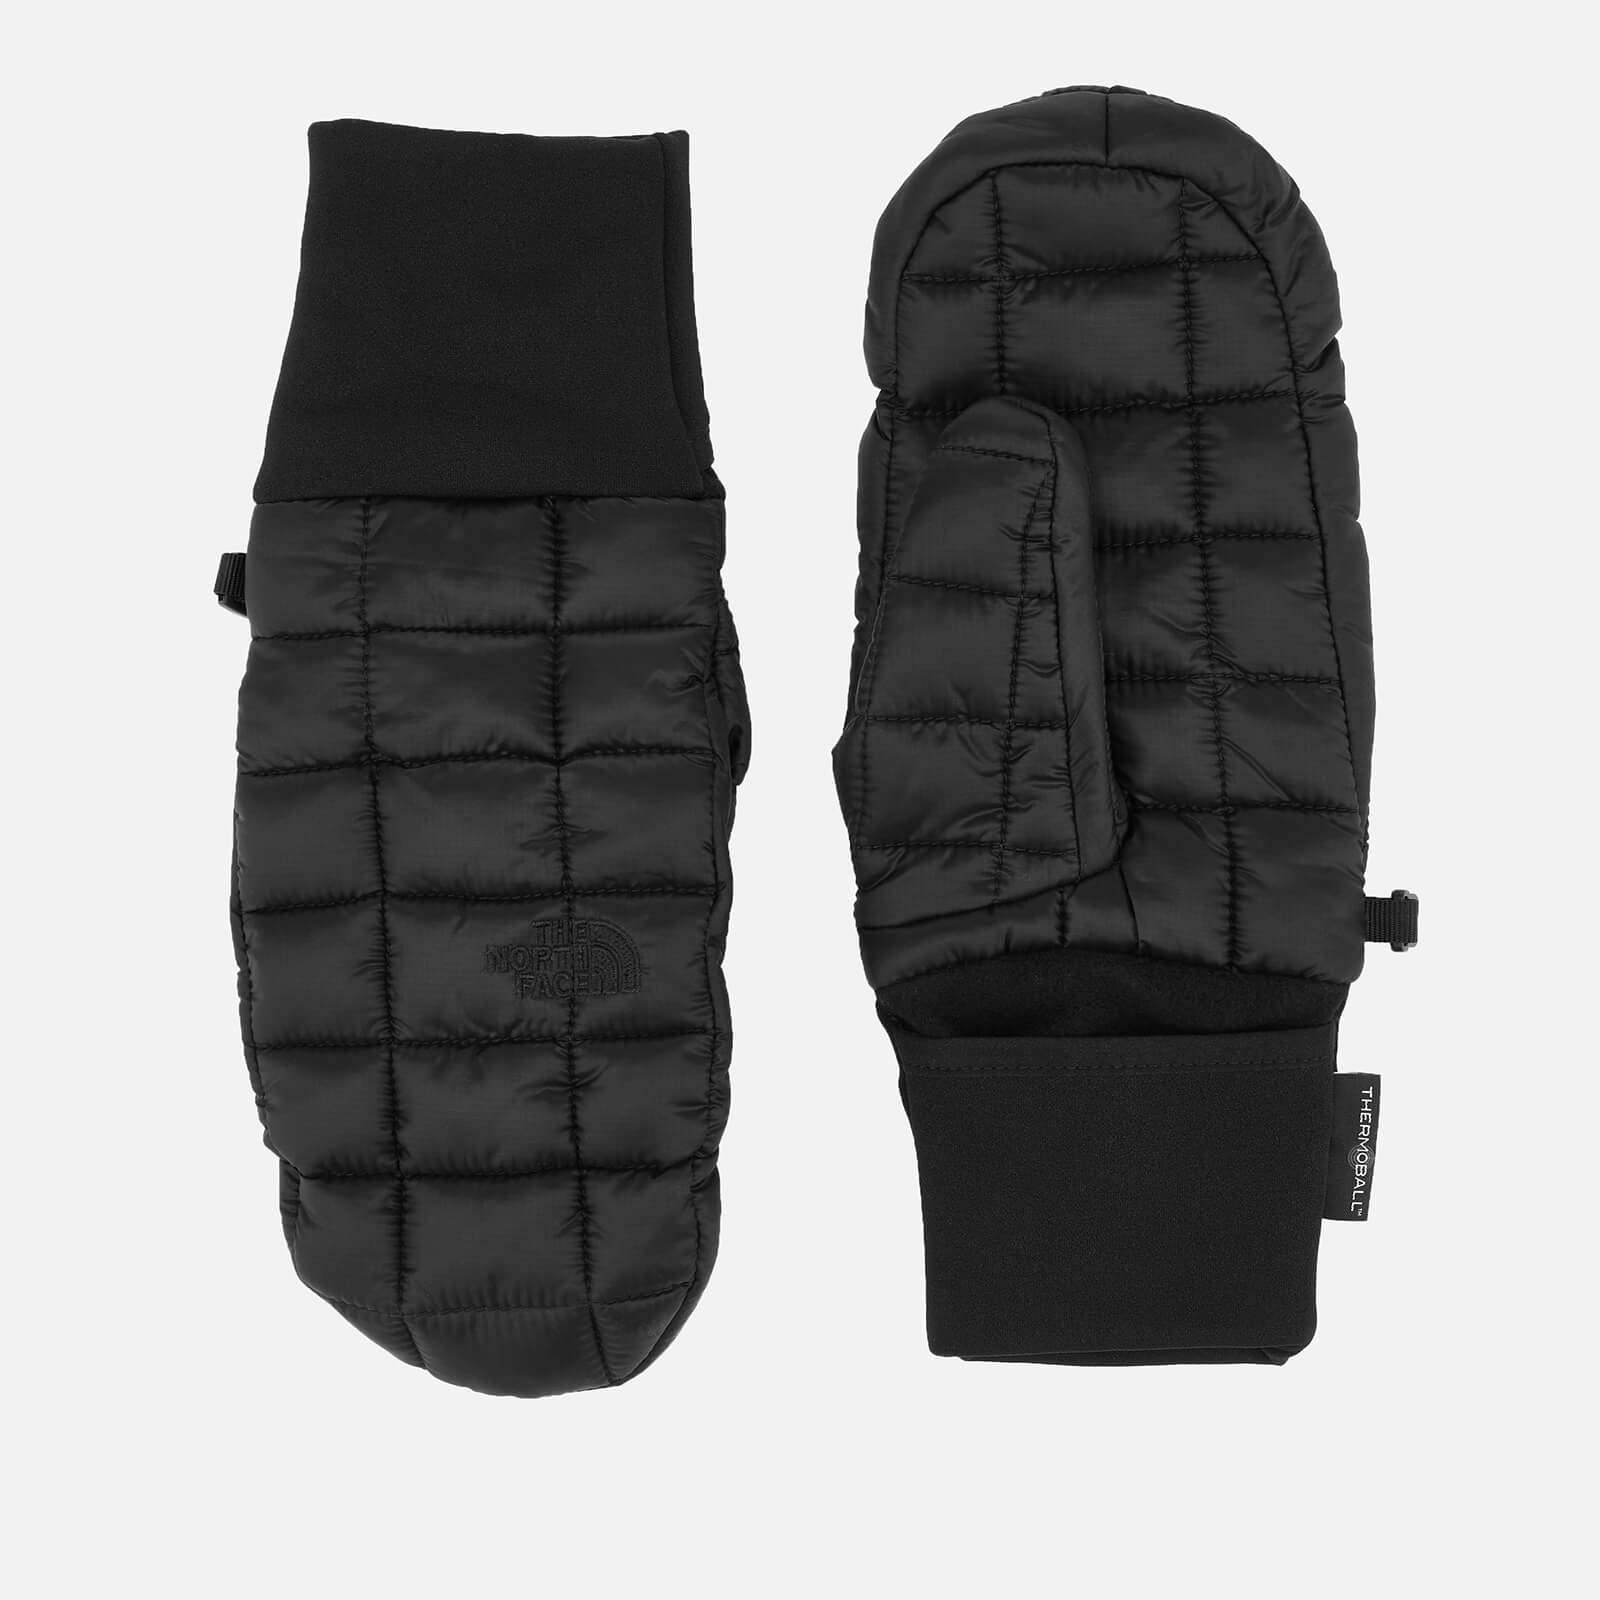 6719c7ead The North Face Thermoball Mitt Gloves - TNF Black